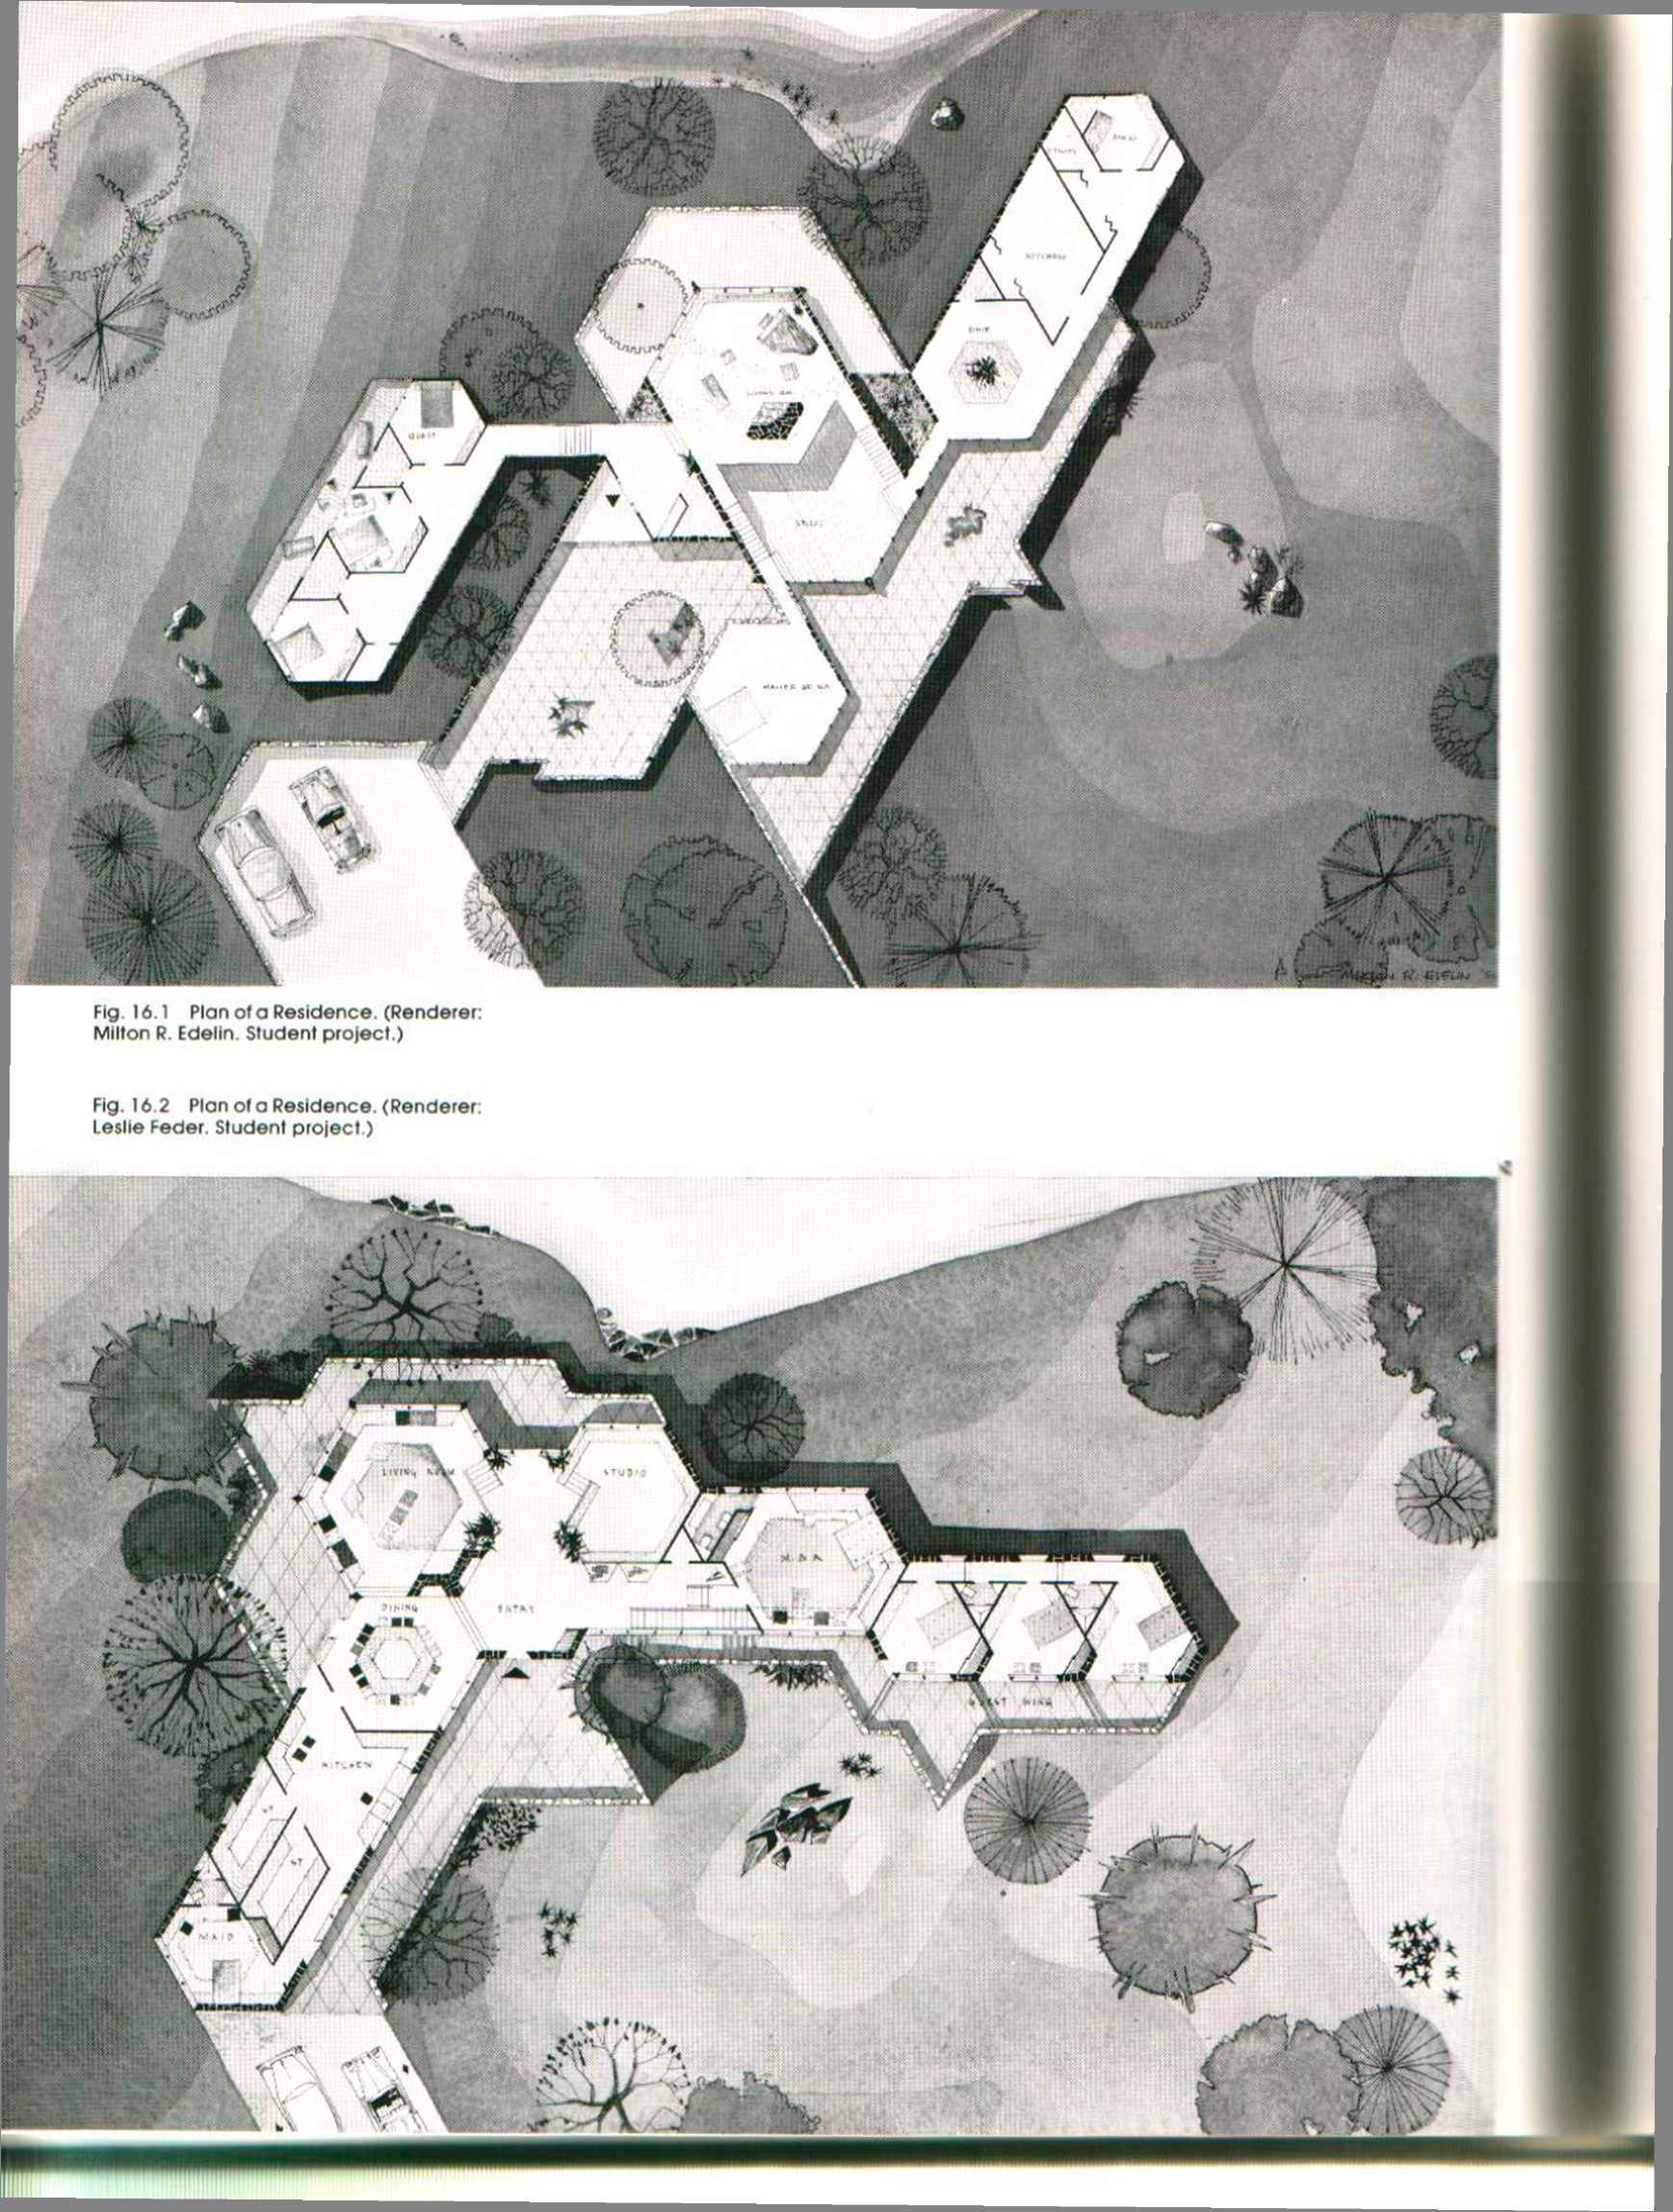 an analysis of the international style in architecture known as bauhaus Definition of bauhaus : of, relating to, or influenced by a school of design noted especially for a program that synthesized technology, craftsmanship, and design aesthetics first known use of bauhaus.